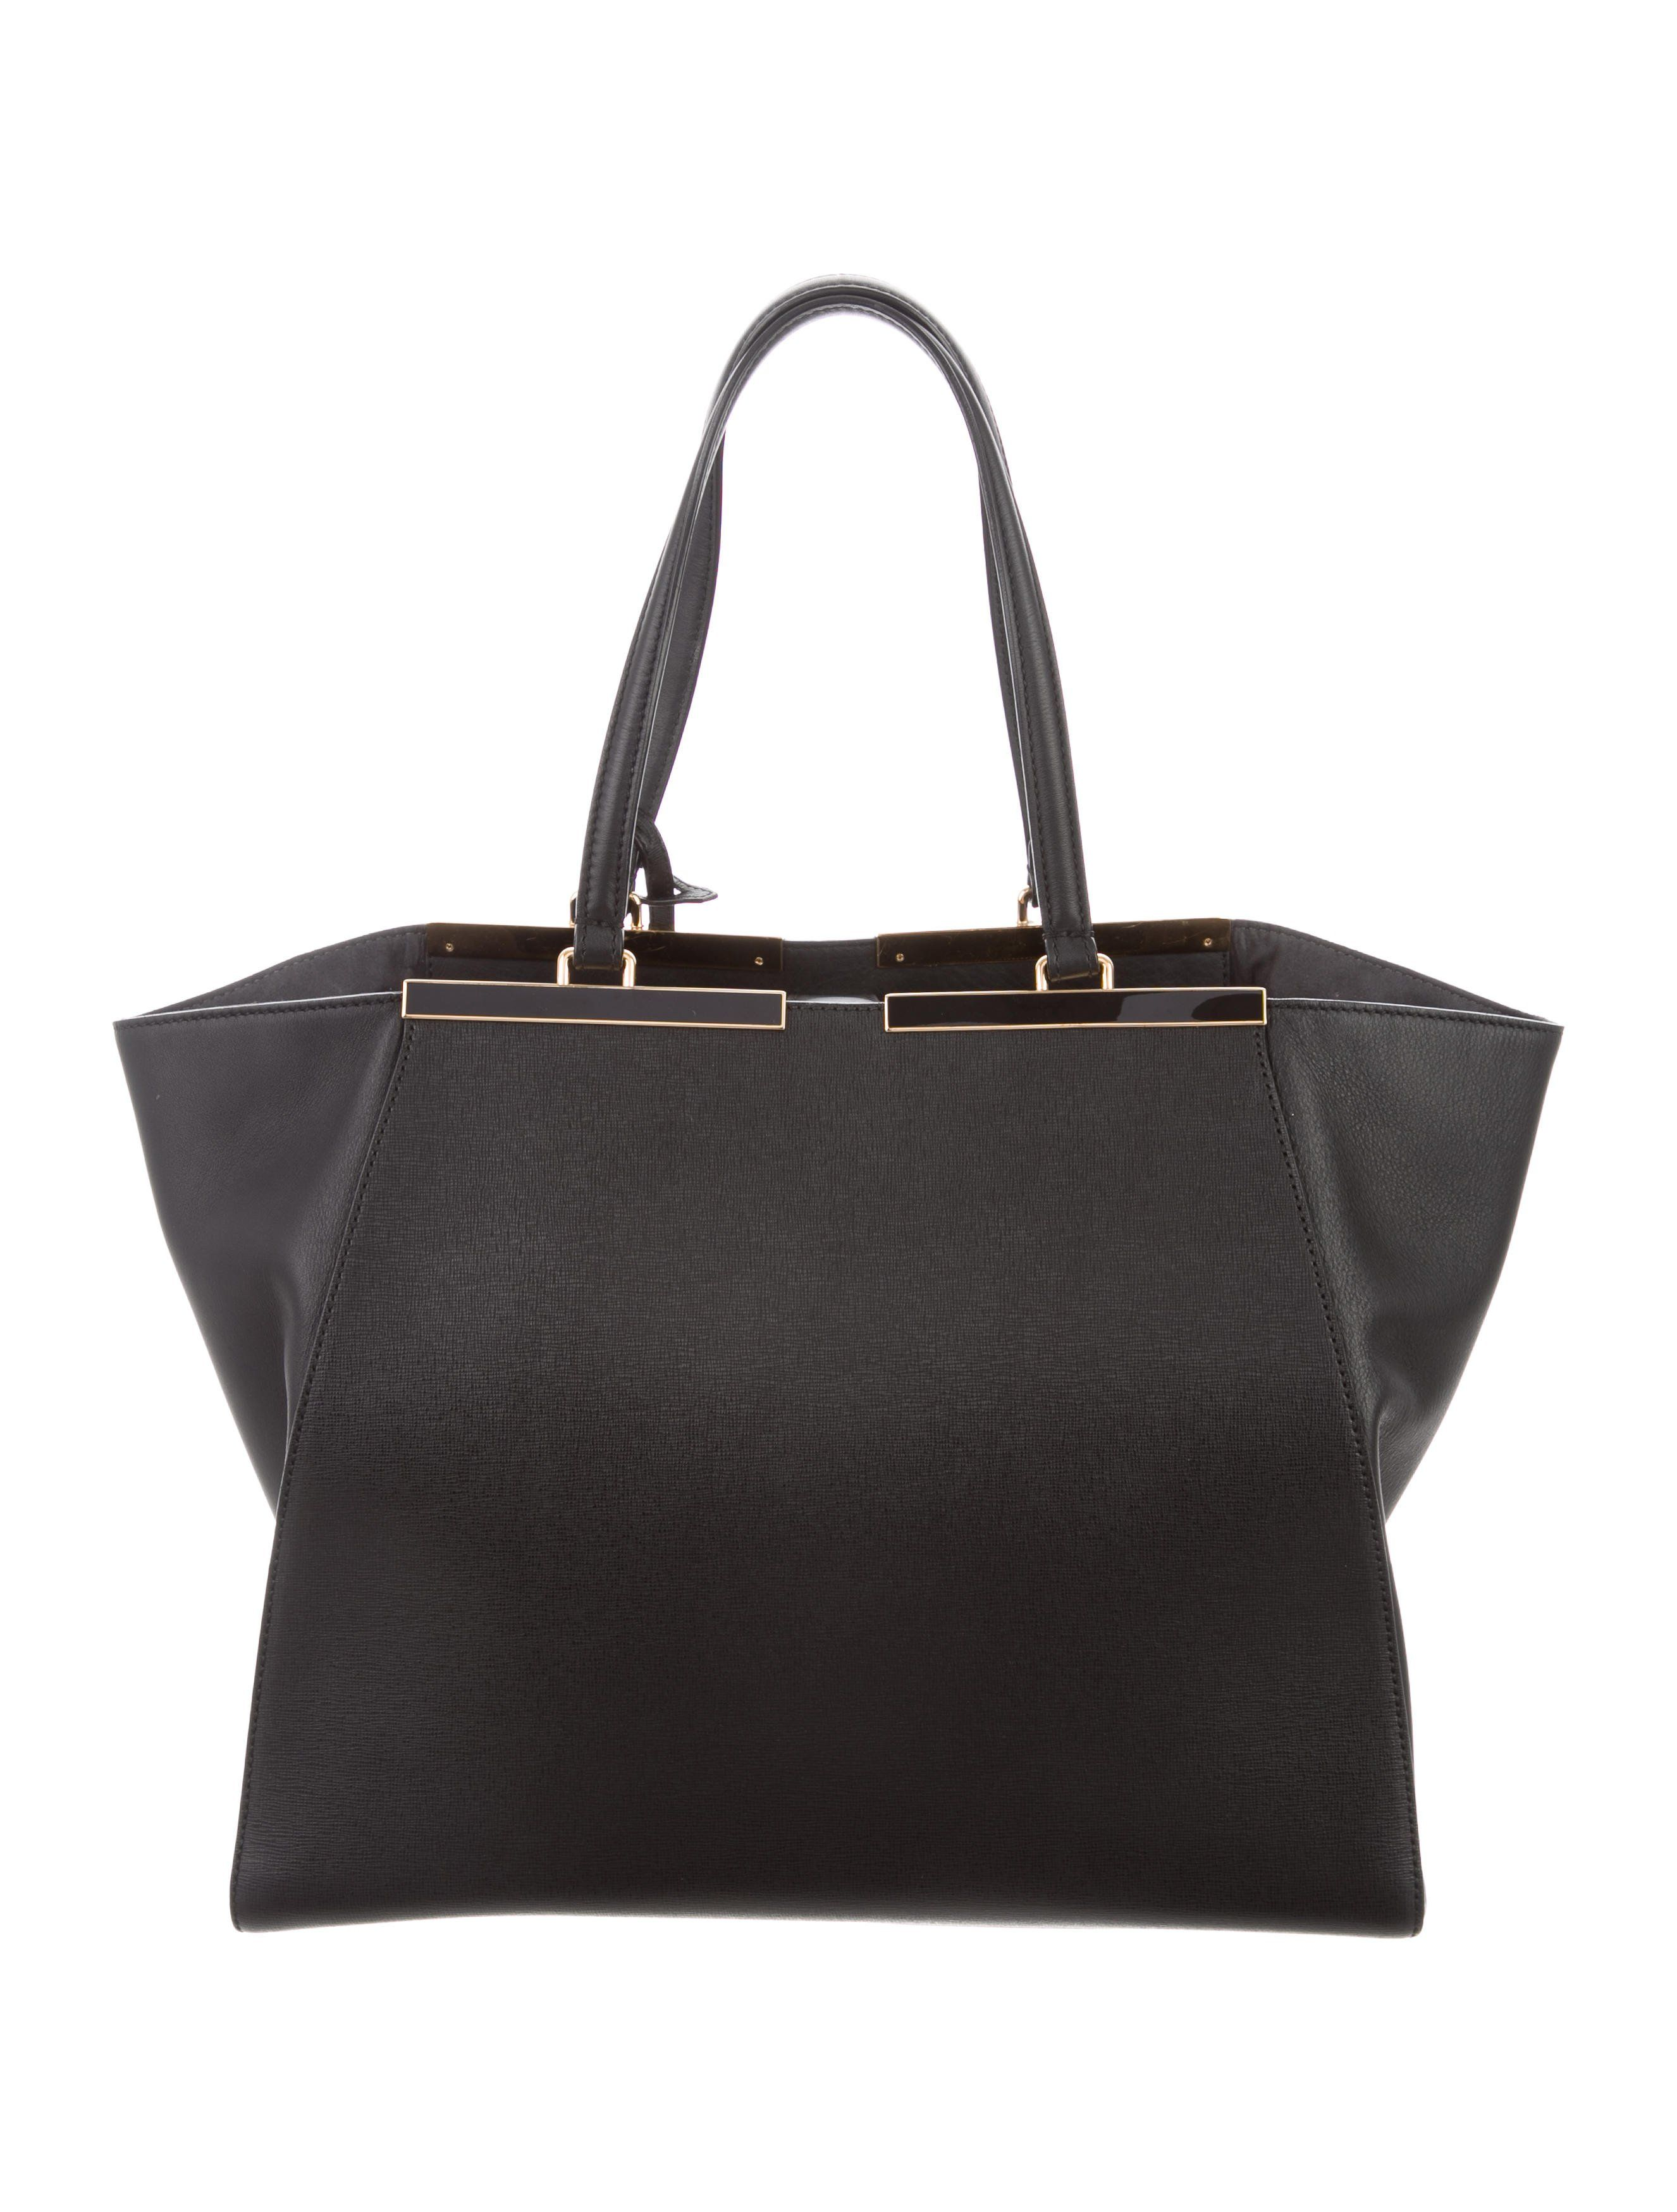 d0df635a8b0 Black leather Fendi Large 3Jours tote with gold-tone hardware, dual flat  shoulder straps, tonal suede lining, three pockets at interior walls; one  with zi